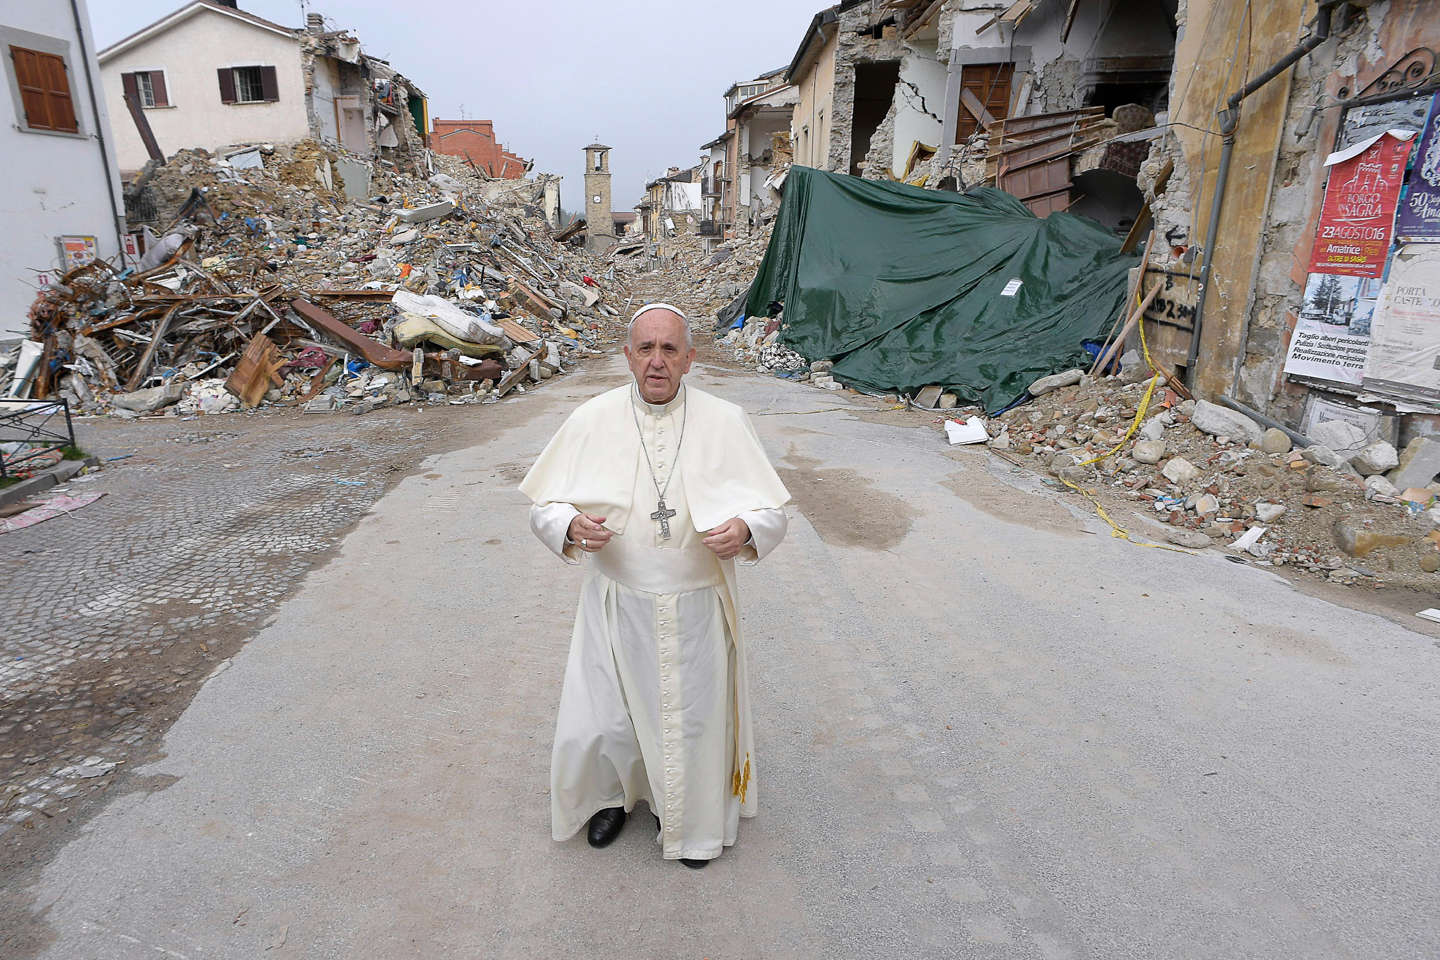 This handout picture released by the Vatican press office on October 4, 2016 shows Pope Francis during a visit in Amatrice, Italy.  Pope Francis on October 4, 2016 made a surprise visit to Amatrice, the small Italian mountain town that bore the brunt of the August 24 earthquake that killed nearly 300 people. The Argentinian pontiff's first point of call was a set of colourful pre-fabricated buildings serving as a makeshift school. Amatrice's school was destroyed in the quake despite having been expensively renovated to make it quake resistant a few years ago.  / AFP PHOTO / OSSERVATORE ROMANO / OSSERVATORE ROMANO